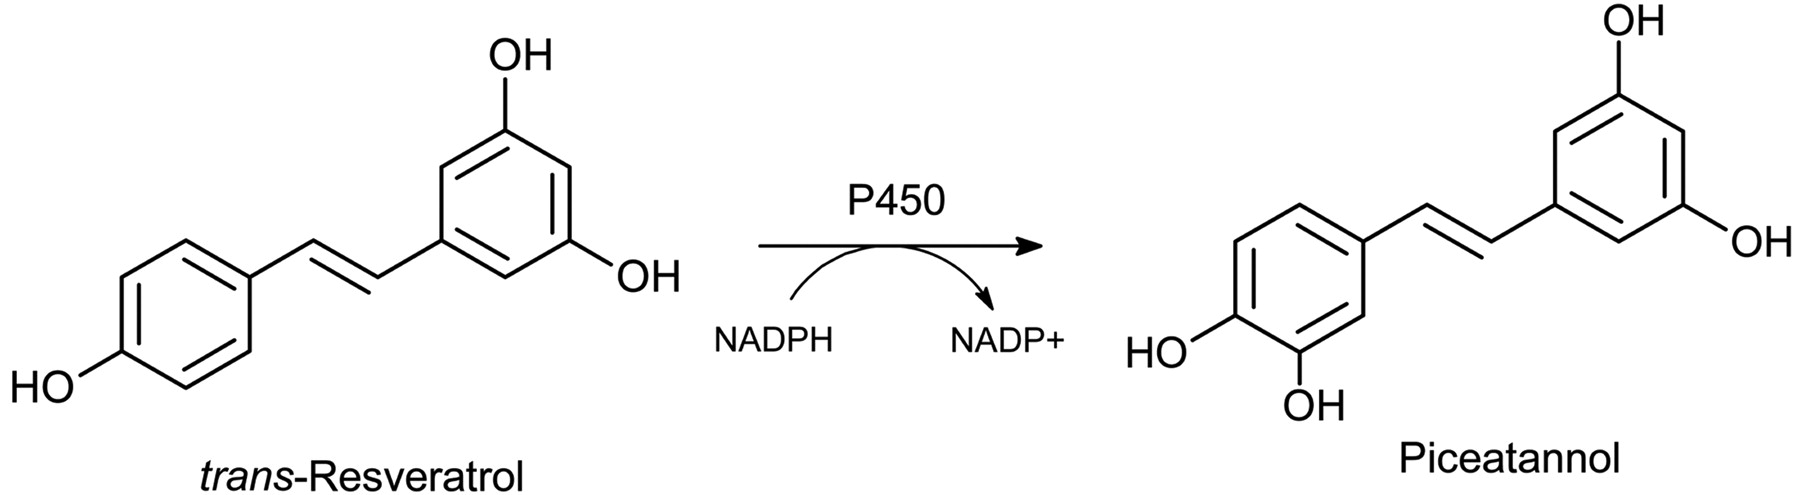 Generation Of The Human Metabolite Piceatannol From The Anticancer